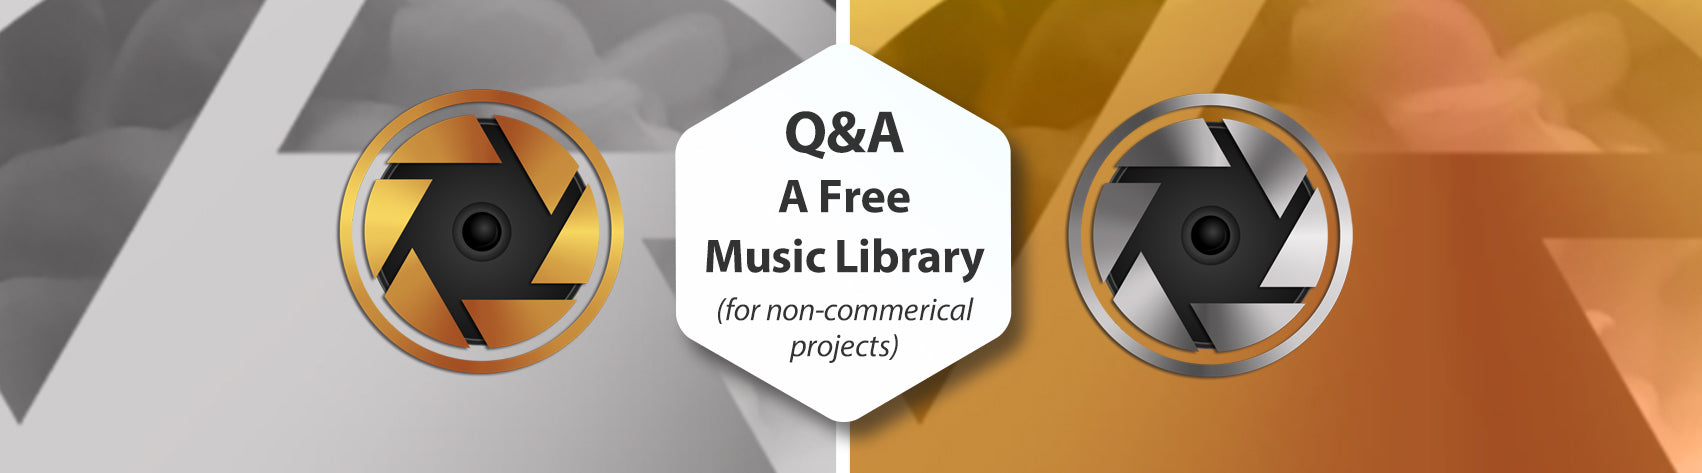 Free Music Library